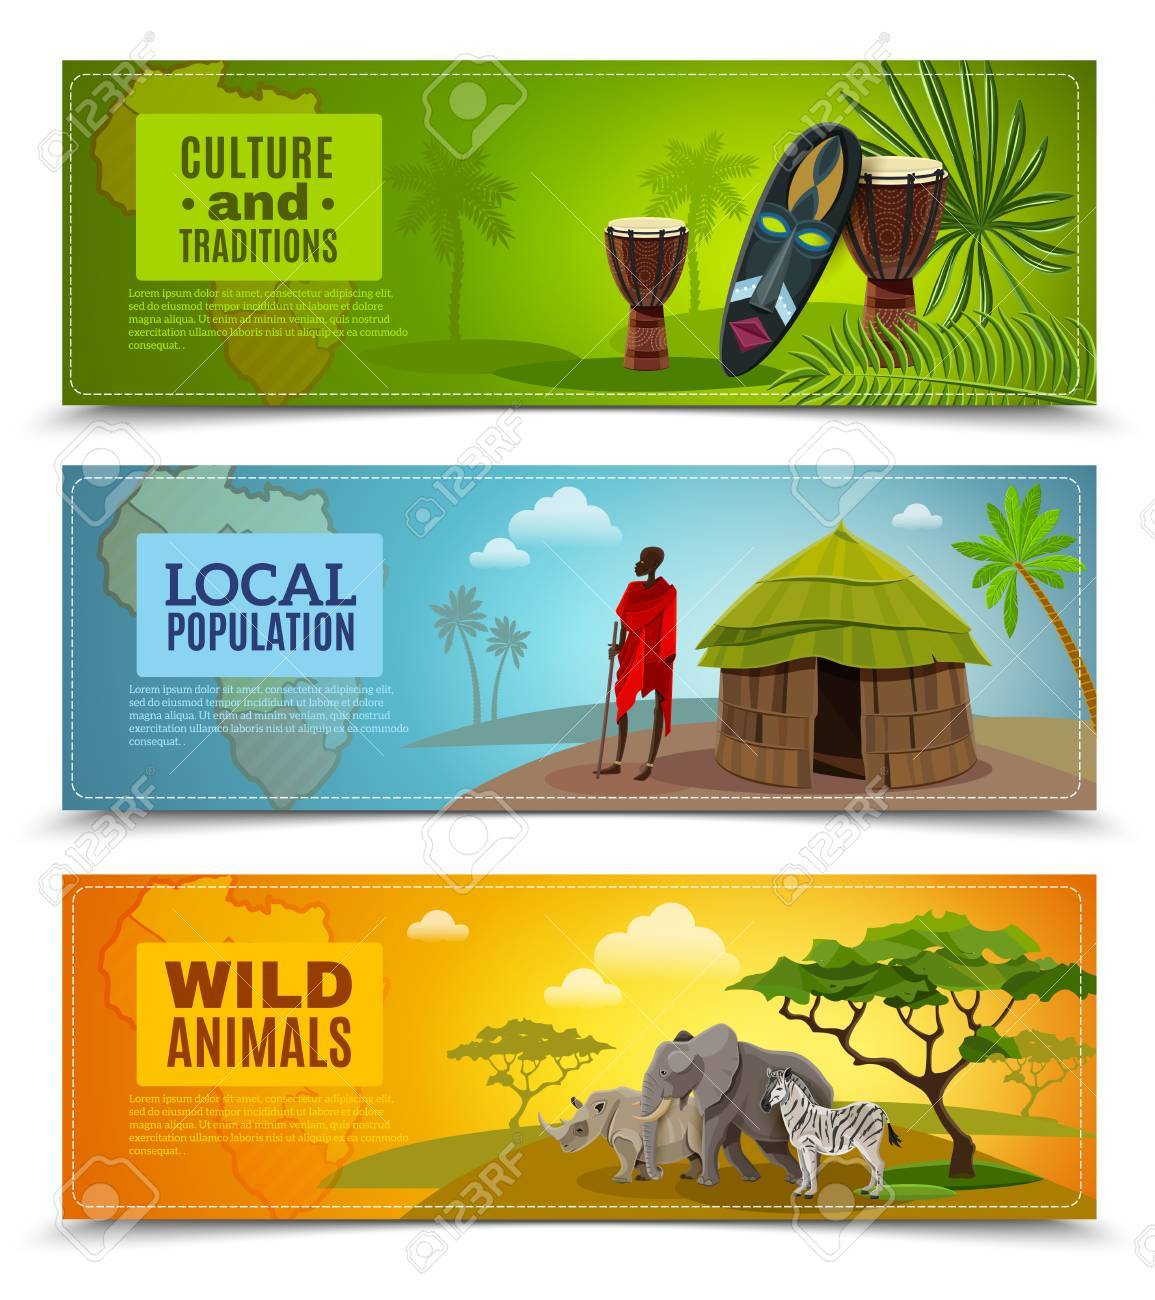 Africa Horizontal Cartoon Banners Set With Culture And Traditions